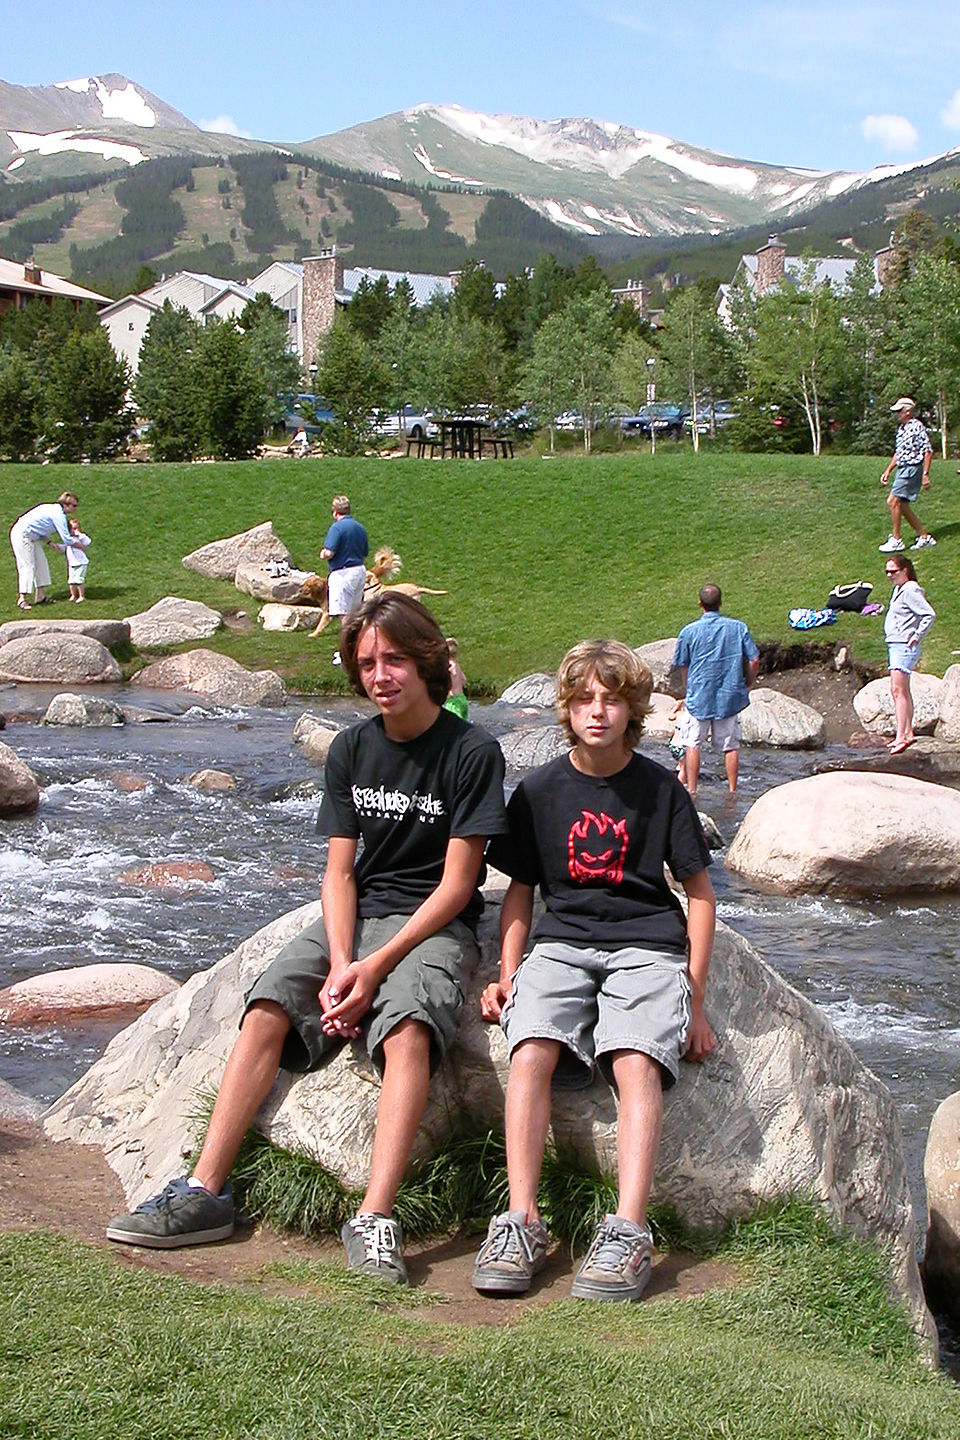 Boys by the Blue River